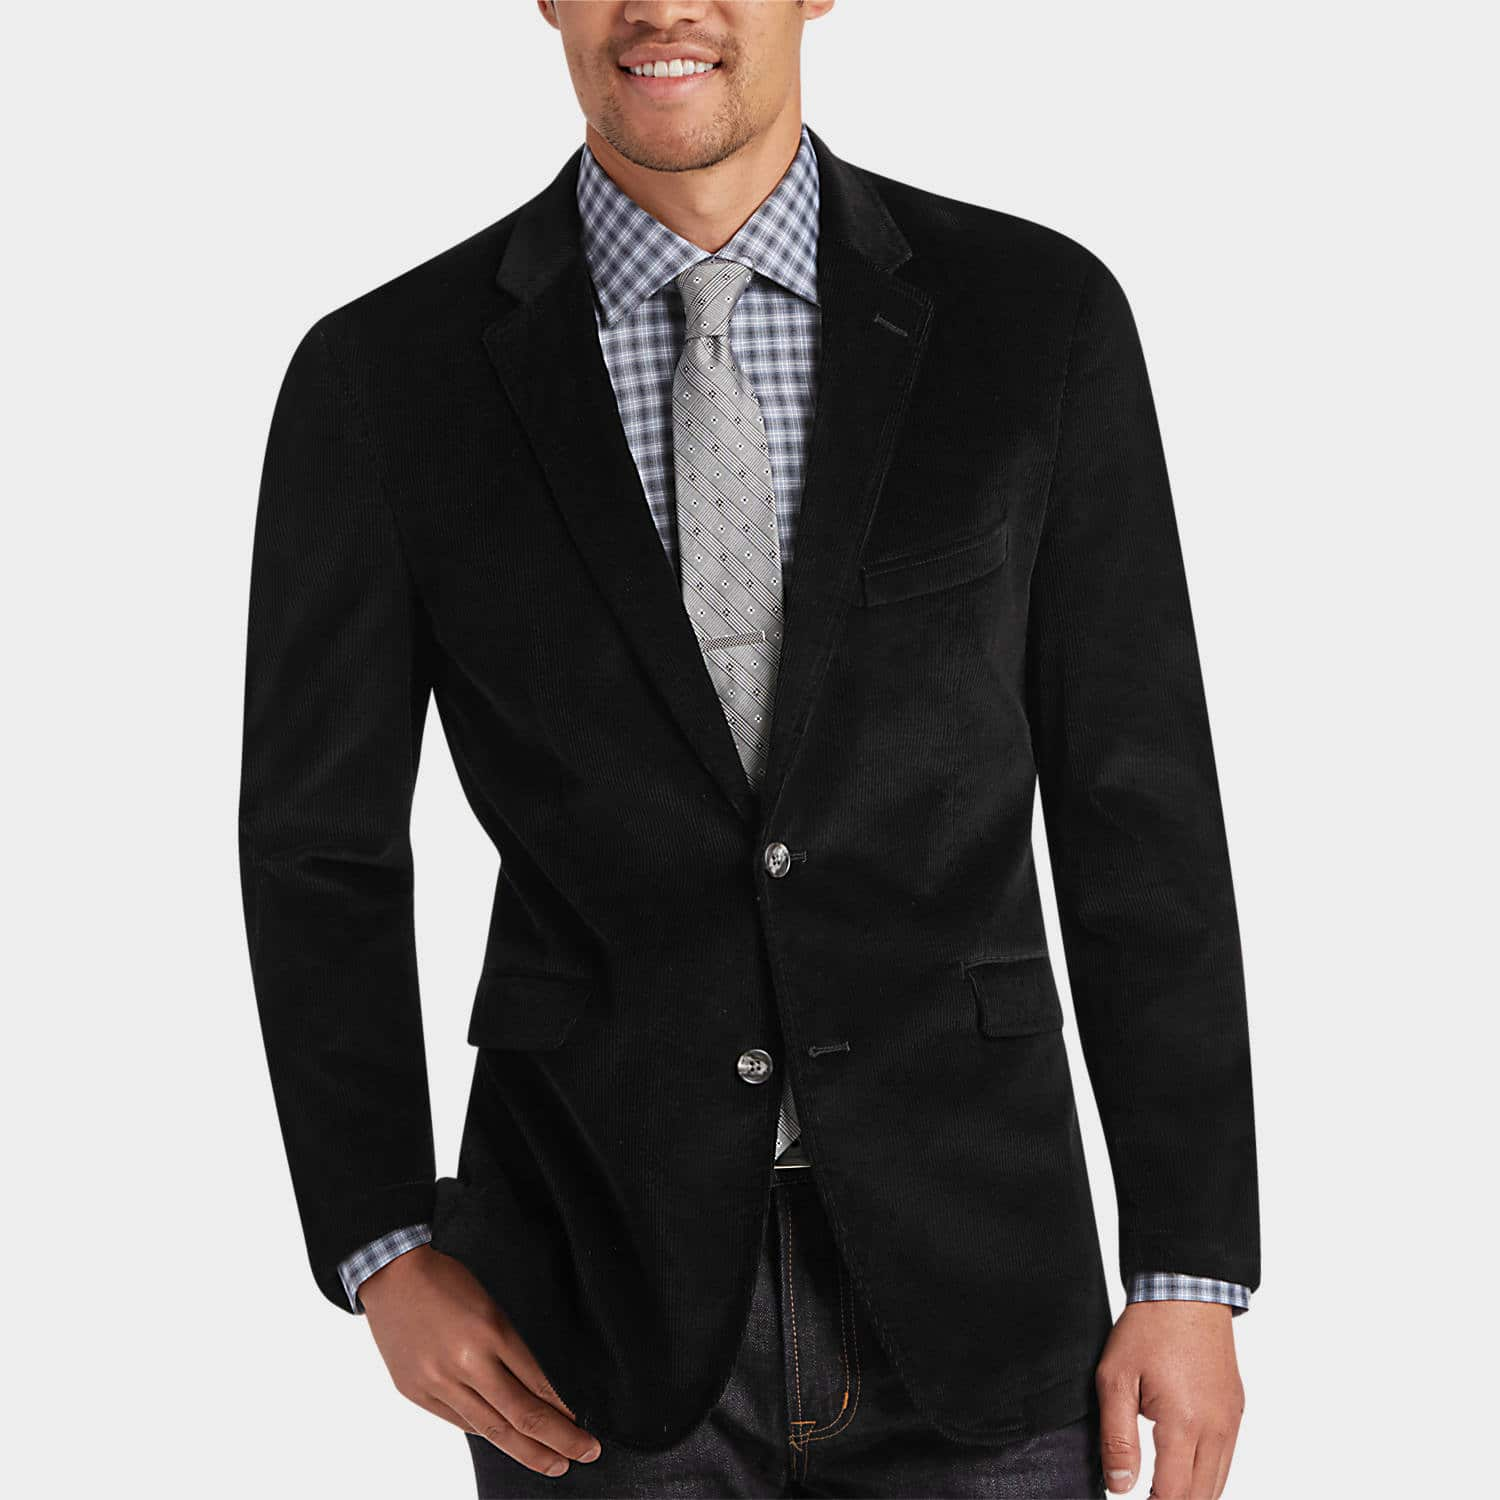 Joseph Abboud Men's Corduroy Modern Fit Casual Coat  $20 & More + Free Shipping